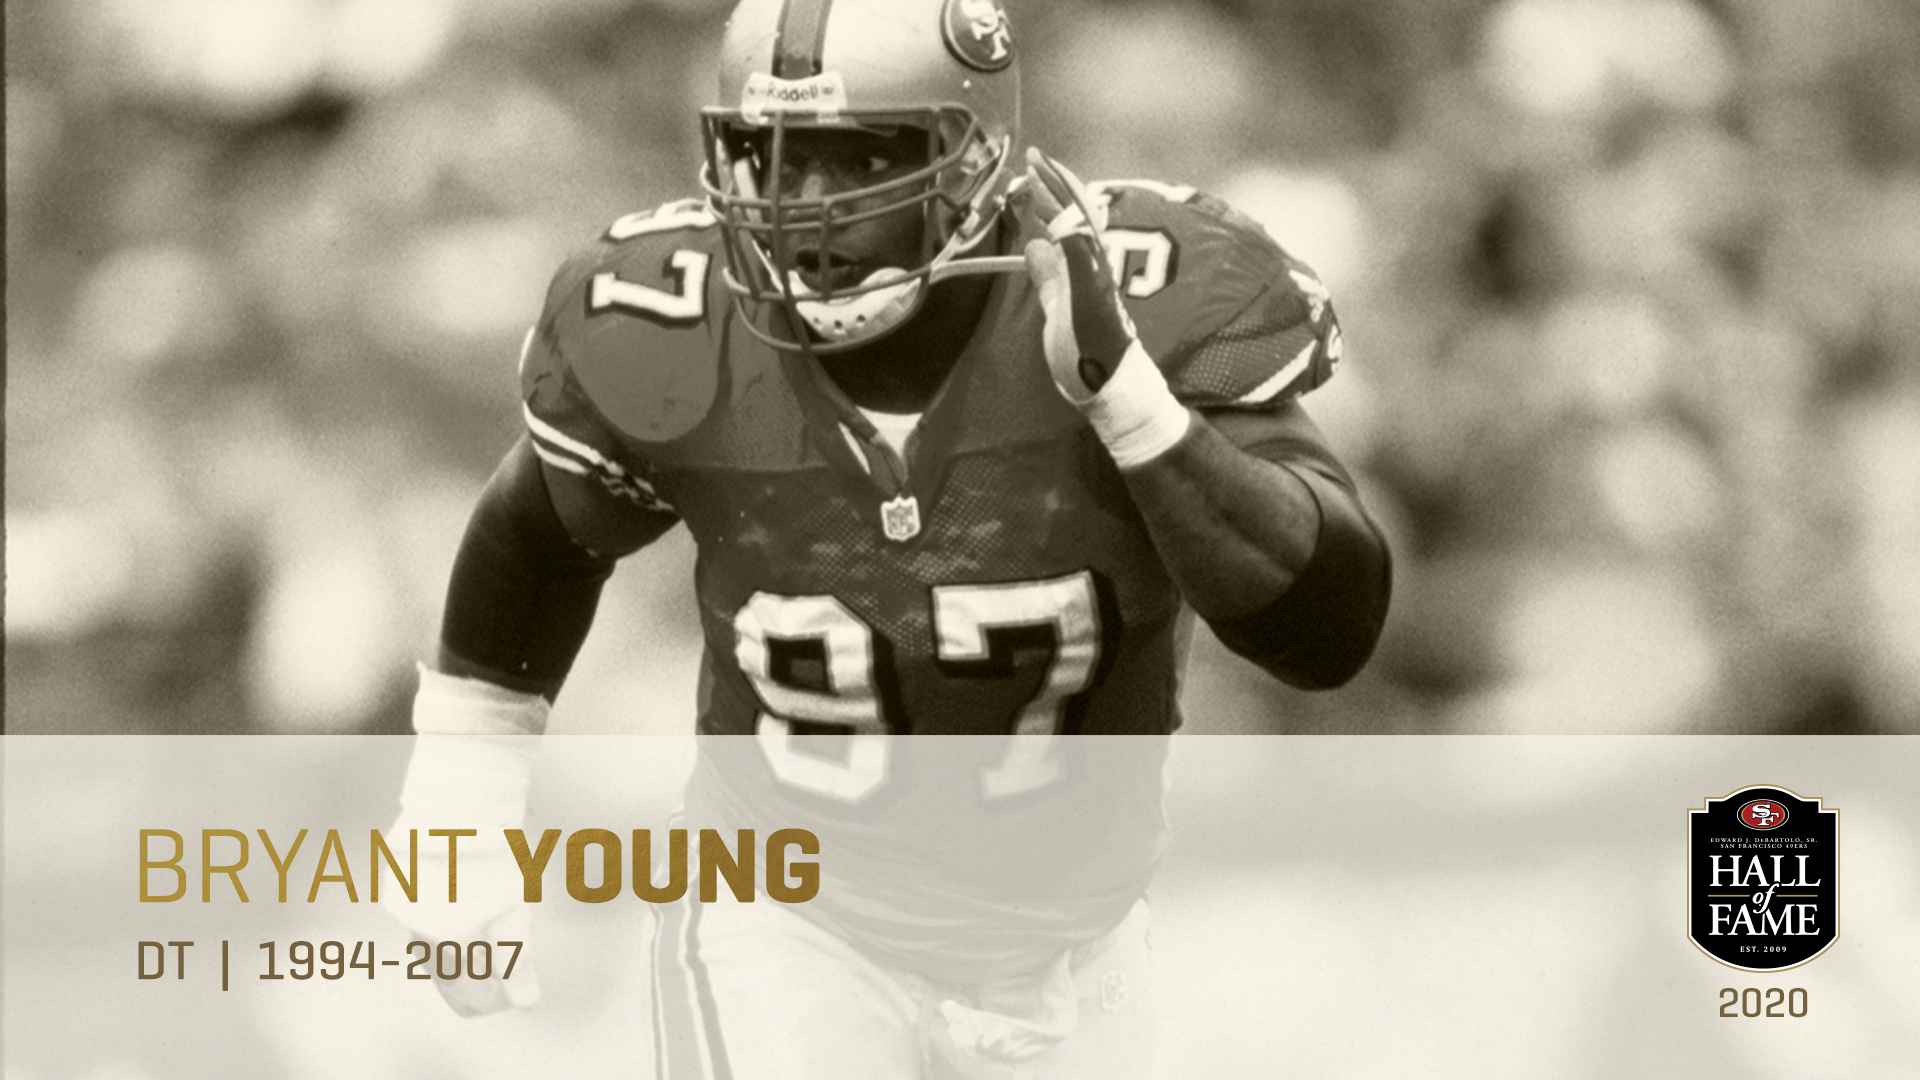 PLAYER-HOF-BryantYoung